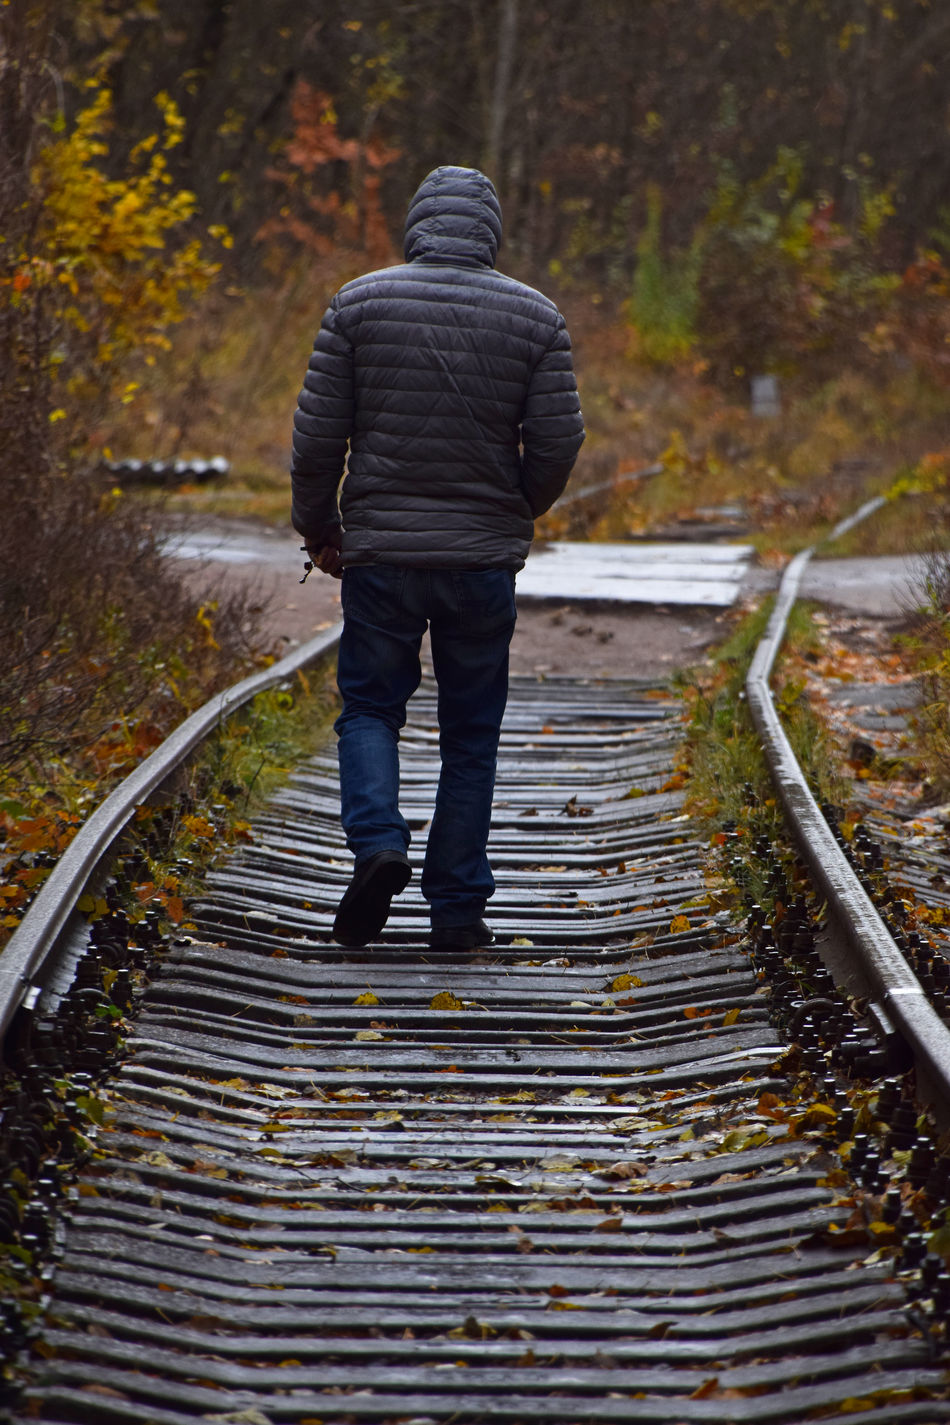 Man walking on thetrain tracks Autumn Beauty In Nature Day Forest Full Length Leaf Leisure Activity Men Metals Nature One Person Outdoors Rain Rainy Days Real People Steps The Secret Spaces The Way Forward Train Ride Train Tracks Walking